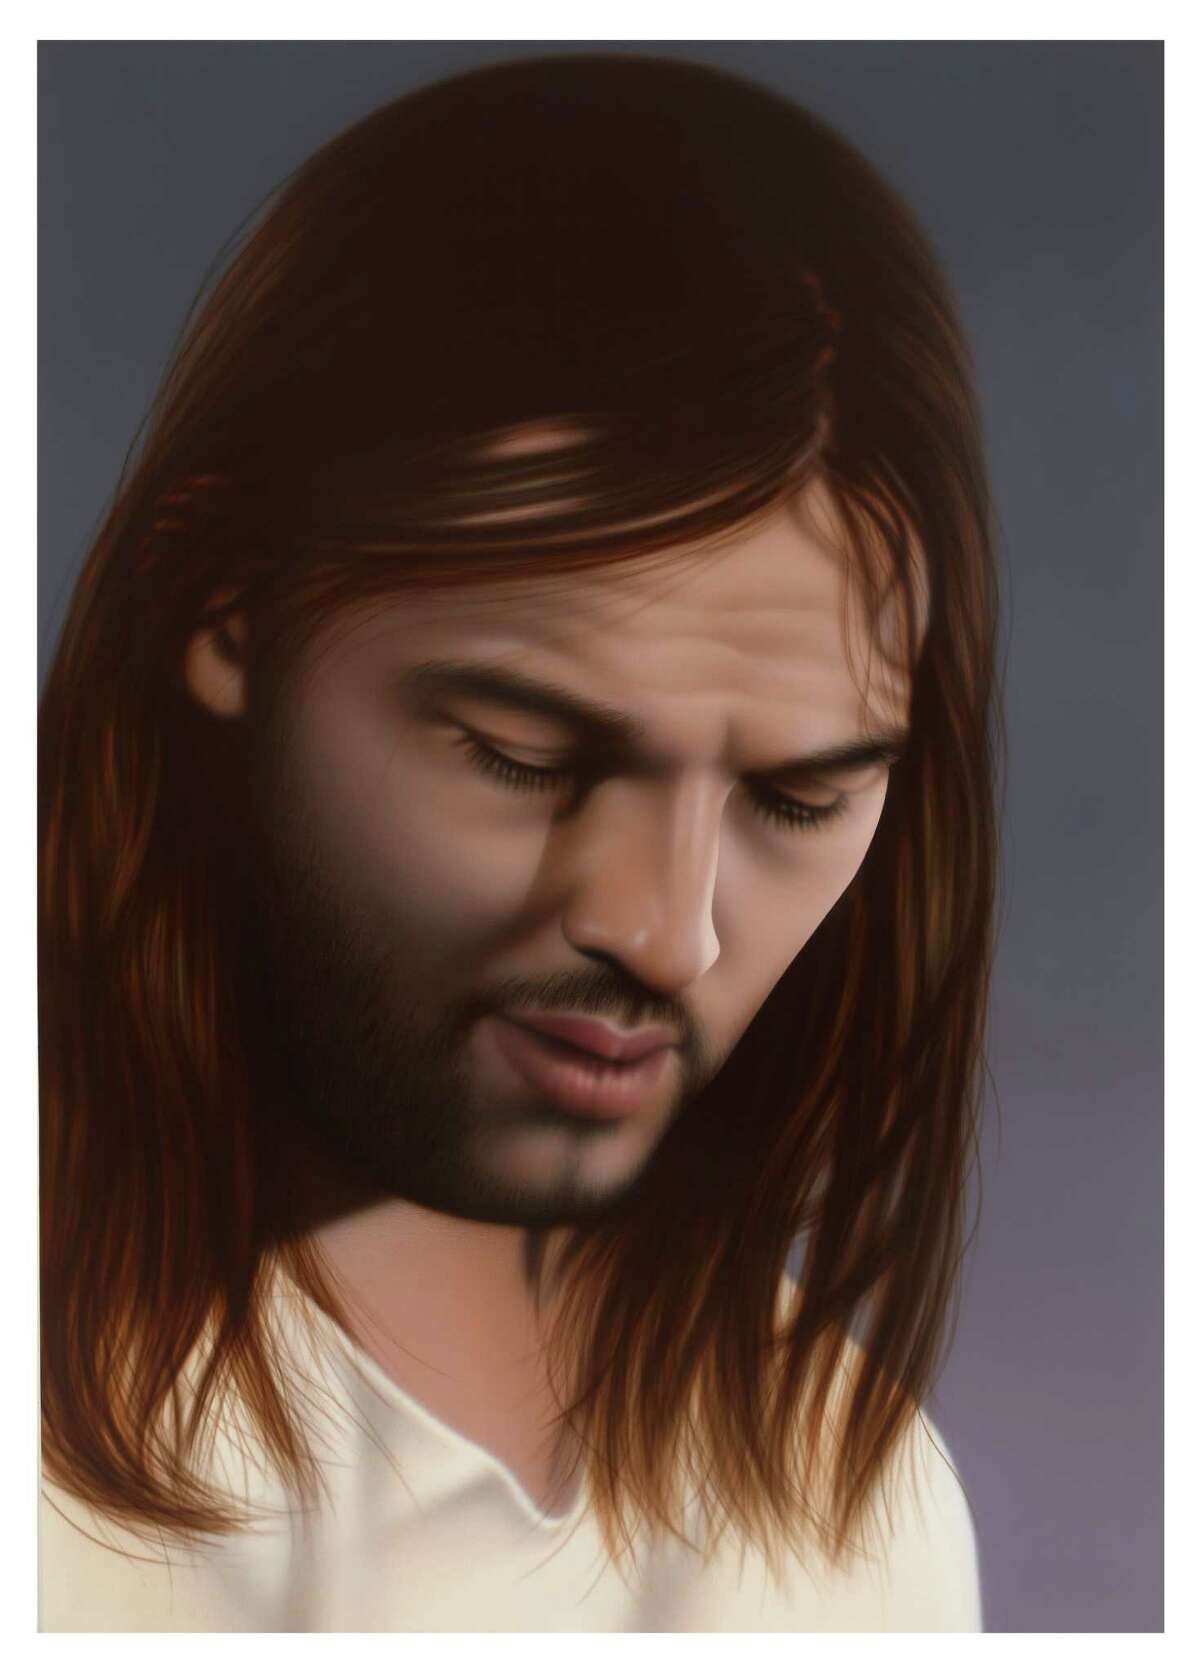 """Rachel Hecker's """"Jesus #2 (David Gilmour/ Pink Floyd),"""" 2011, Acrylic on canvas, 48 x 34 inches, will be part of It Is What It Is. Or Is It? May 11-July 29 at Contemporary Arts Museum Houston, 5216 Montrose; 713-284-8250."""